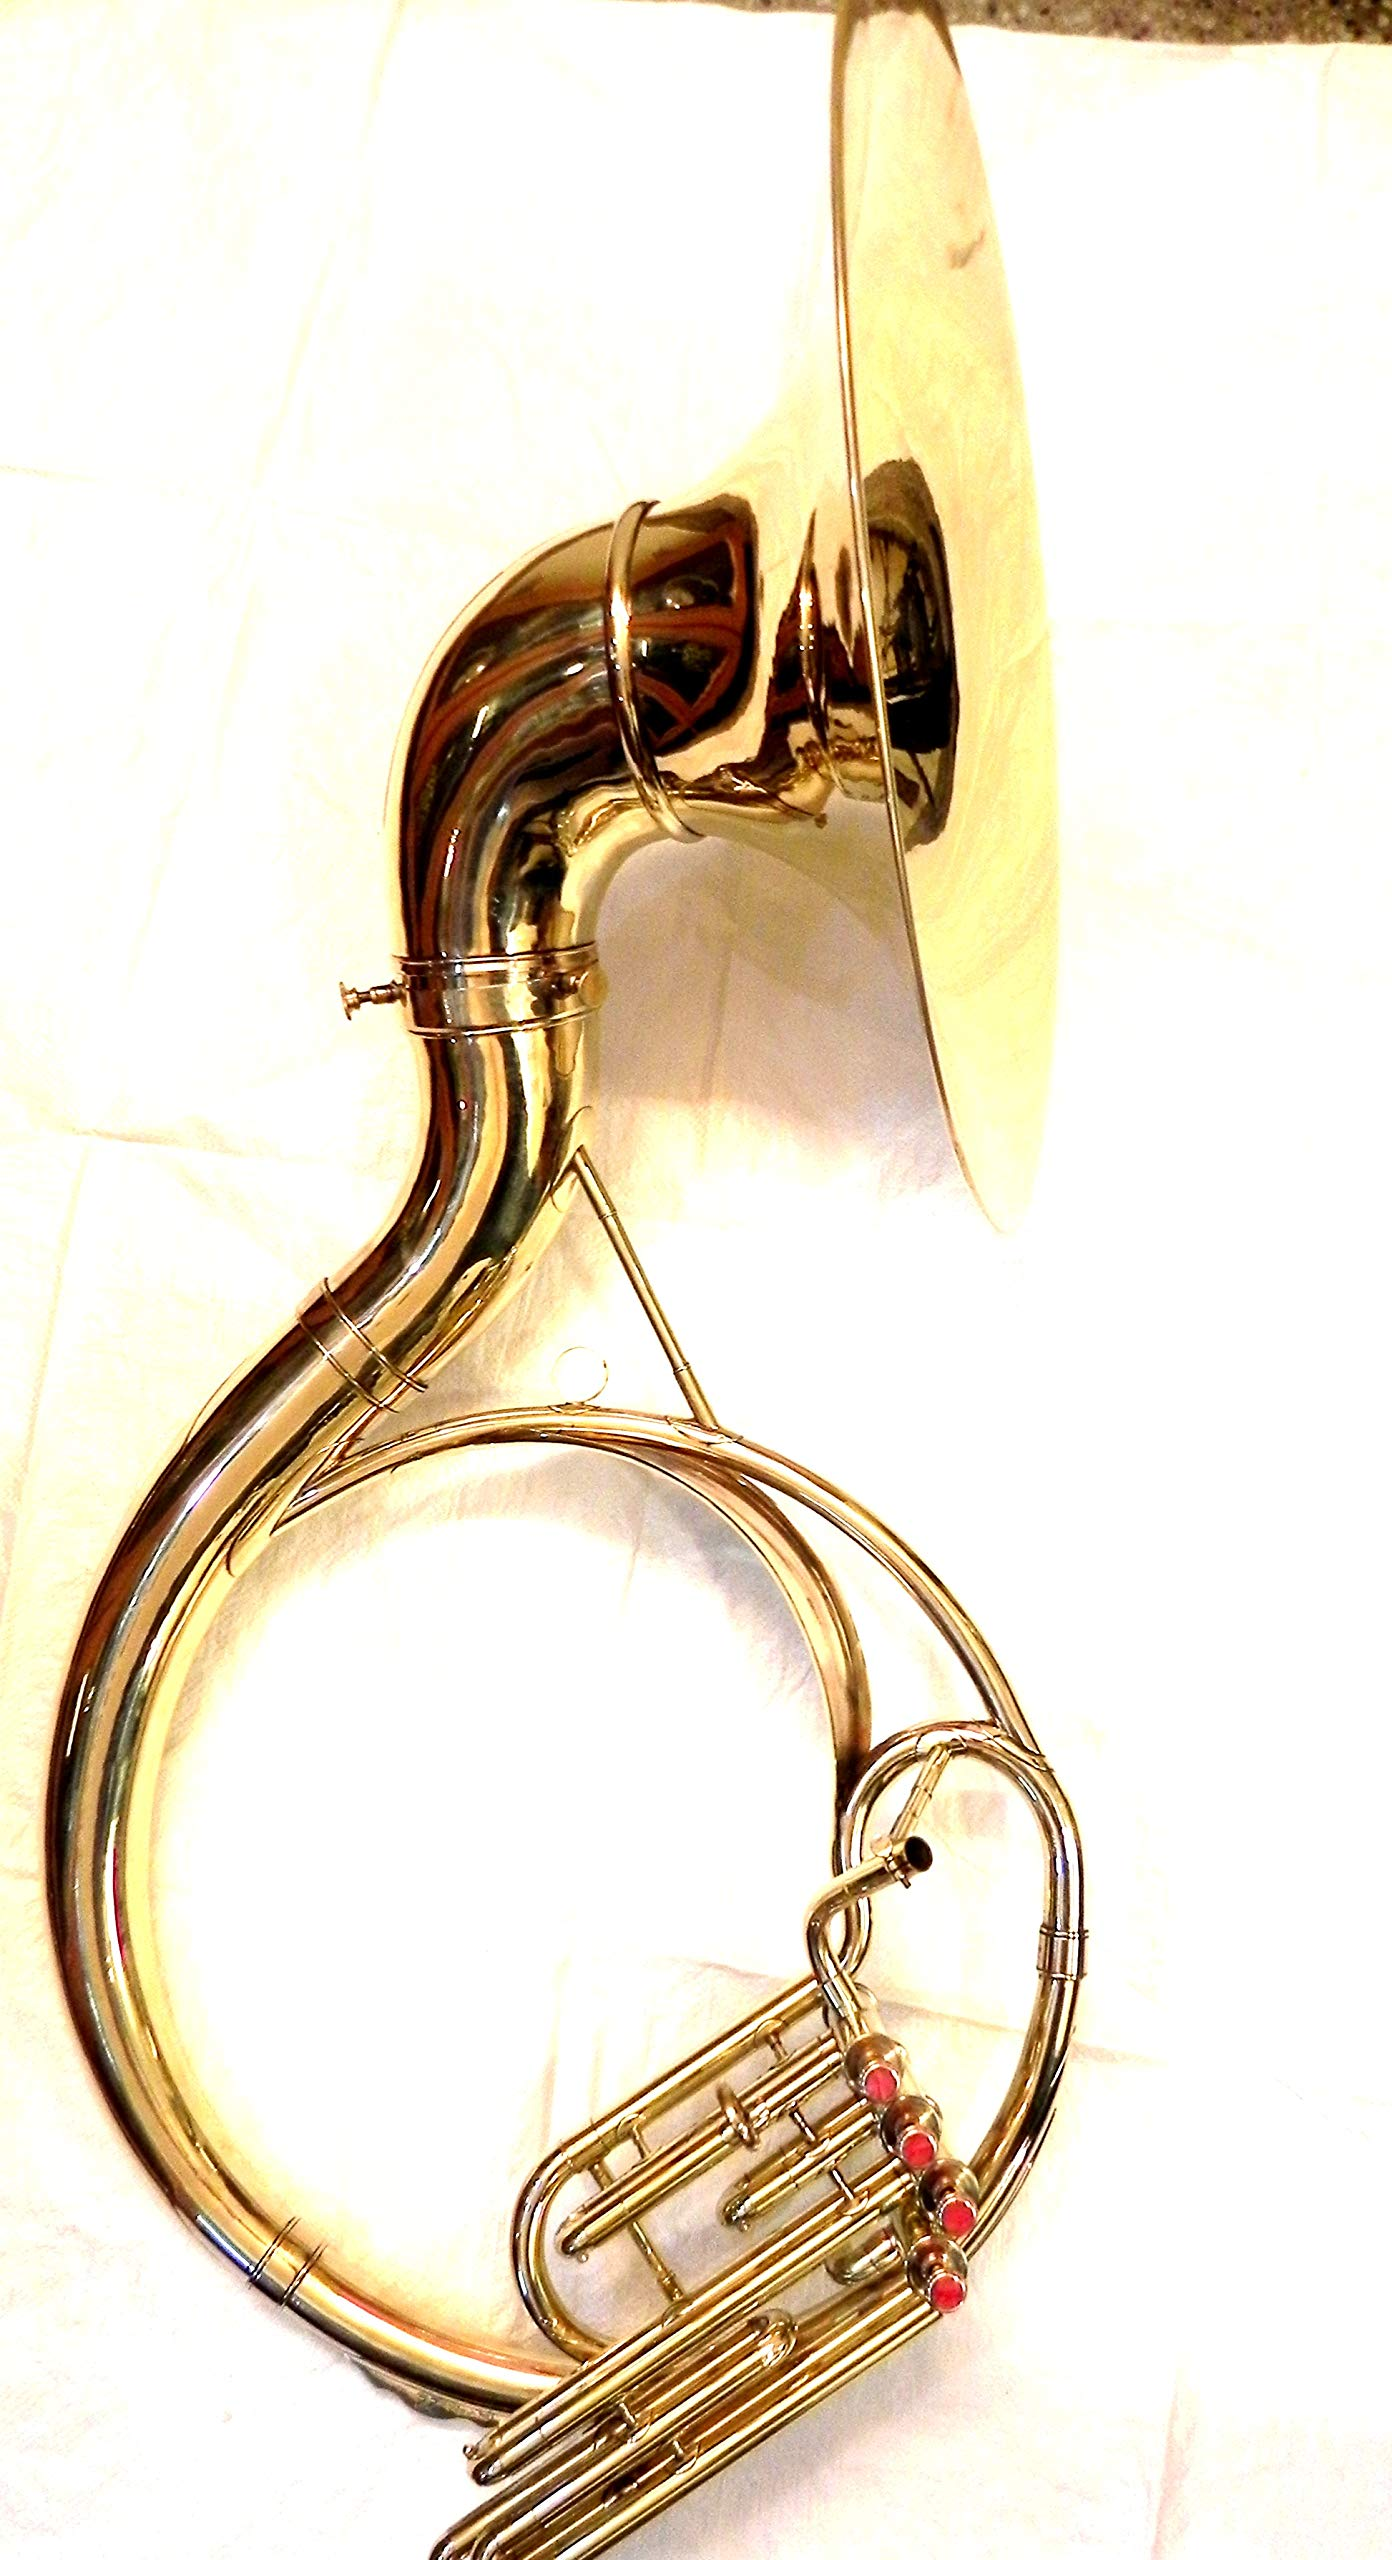 IM INDIAN HANDMADE BRASS FINISH 4 VALVE SOUSAPHONE BRASS MADE TUBA MOUTH PIECE WITH BAG by I/M